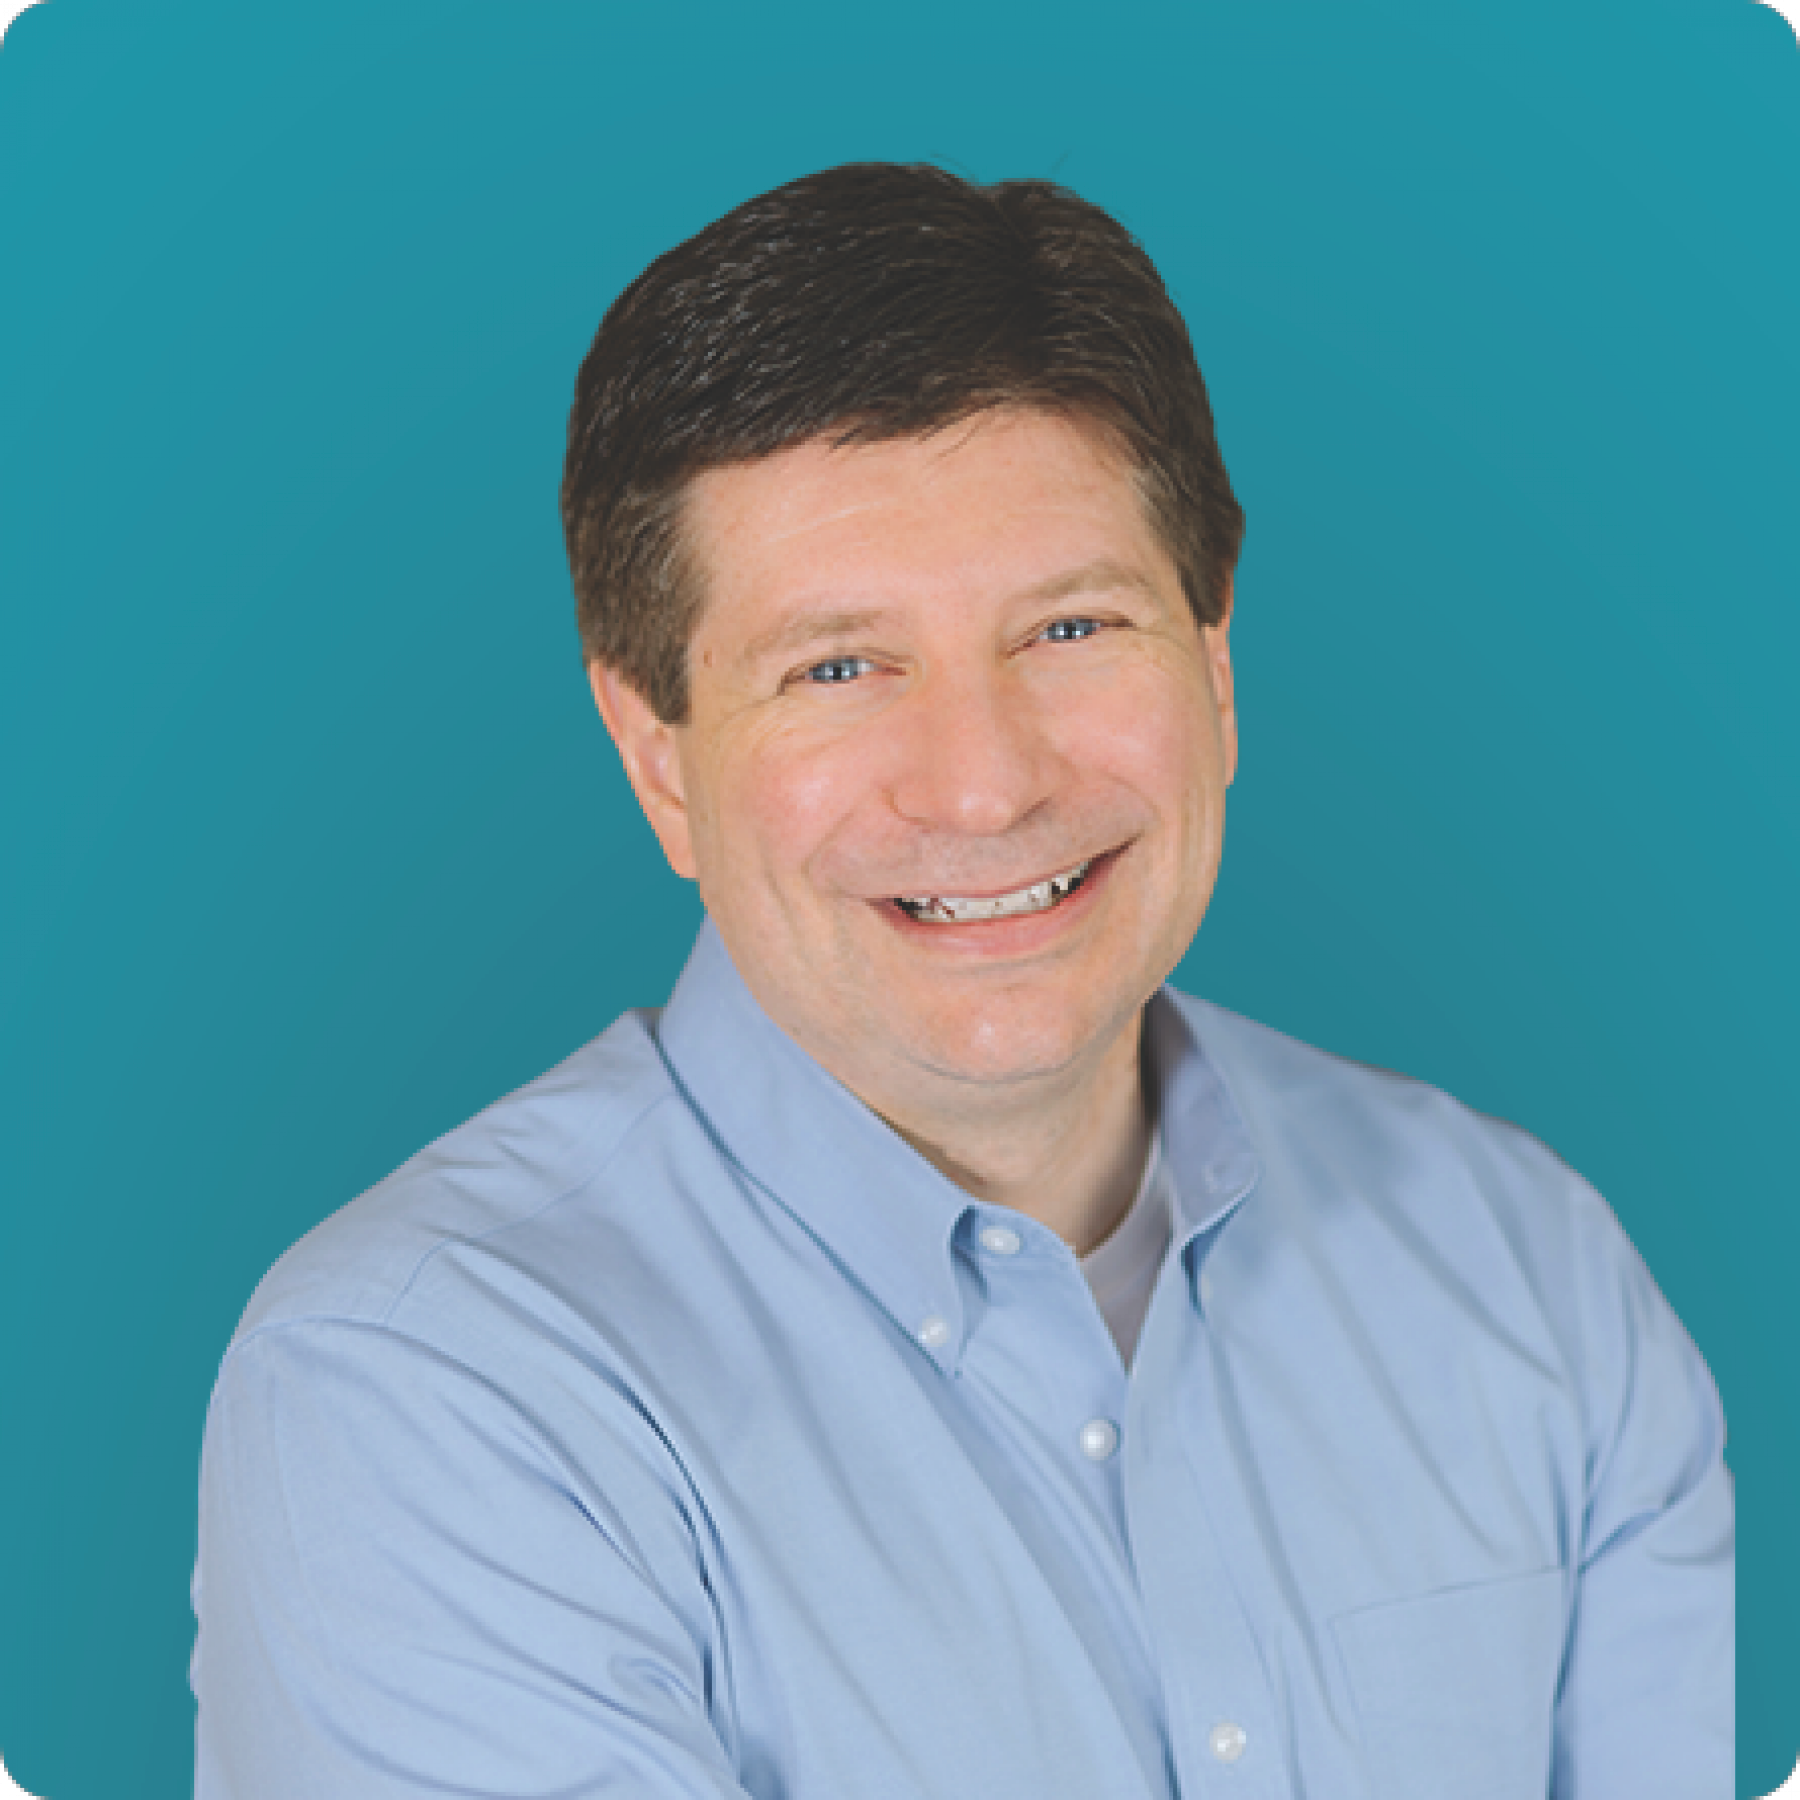 Mike Williams, CSO and co-founder, Logically